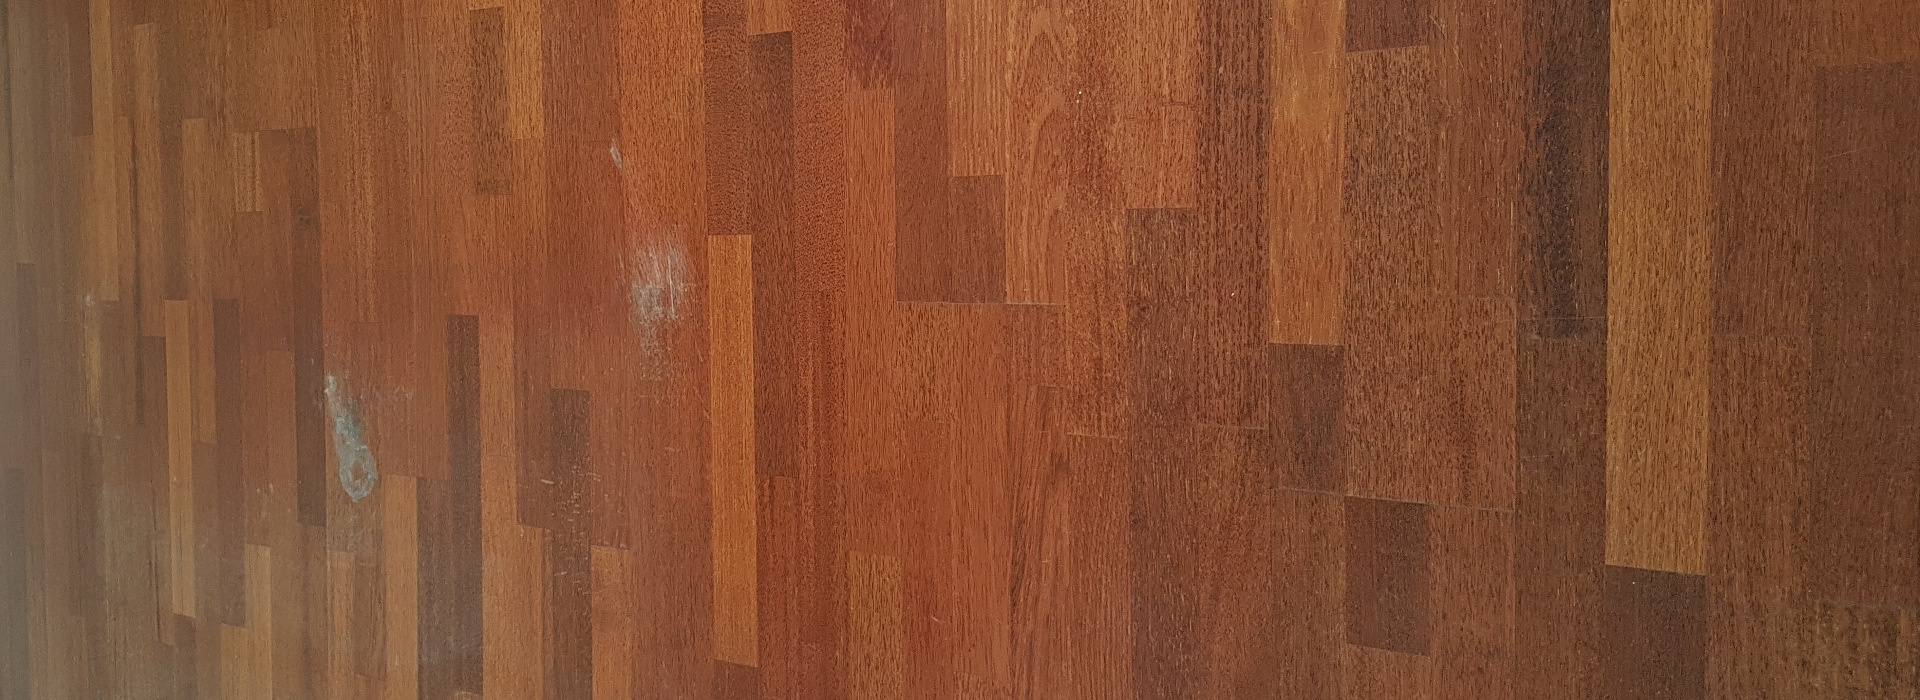 With the Floor sanding you can save up to 70% of new wood flooring